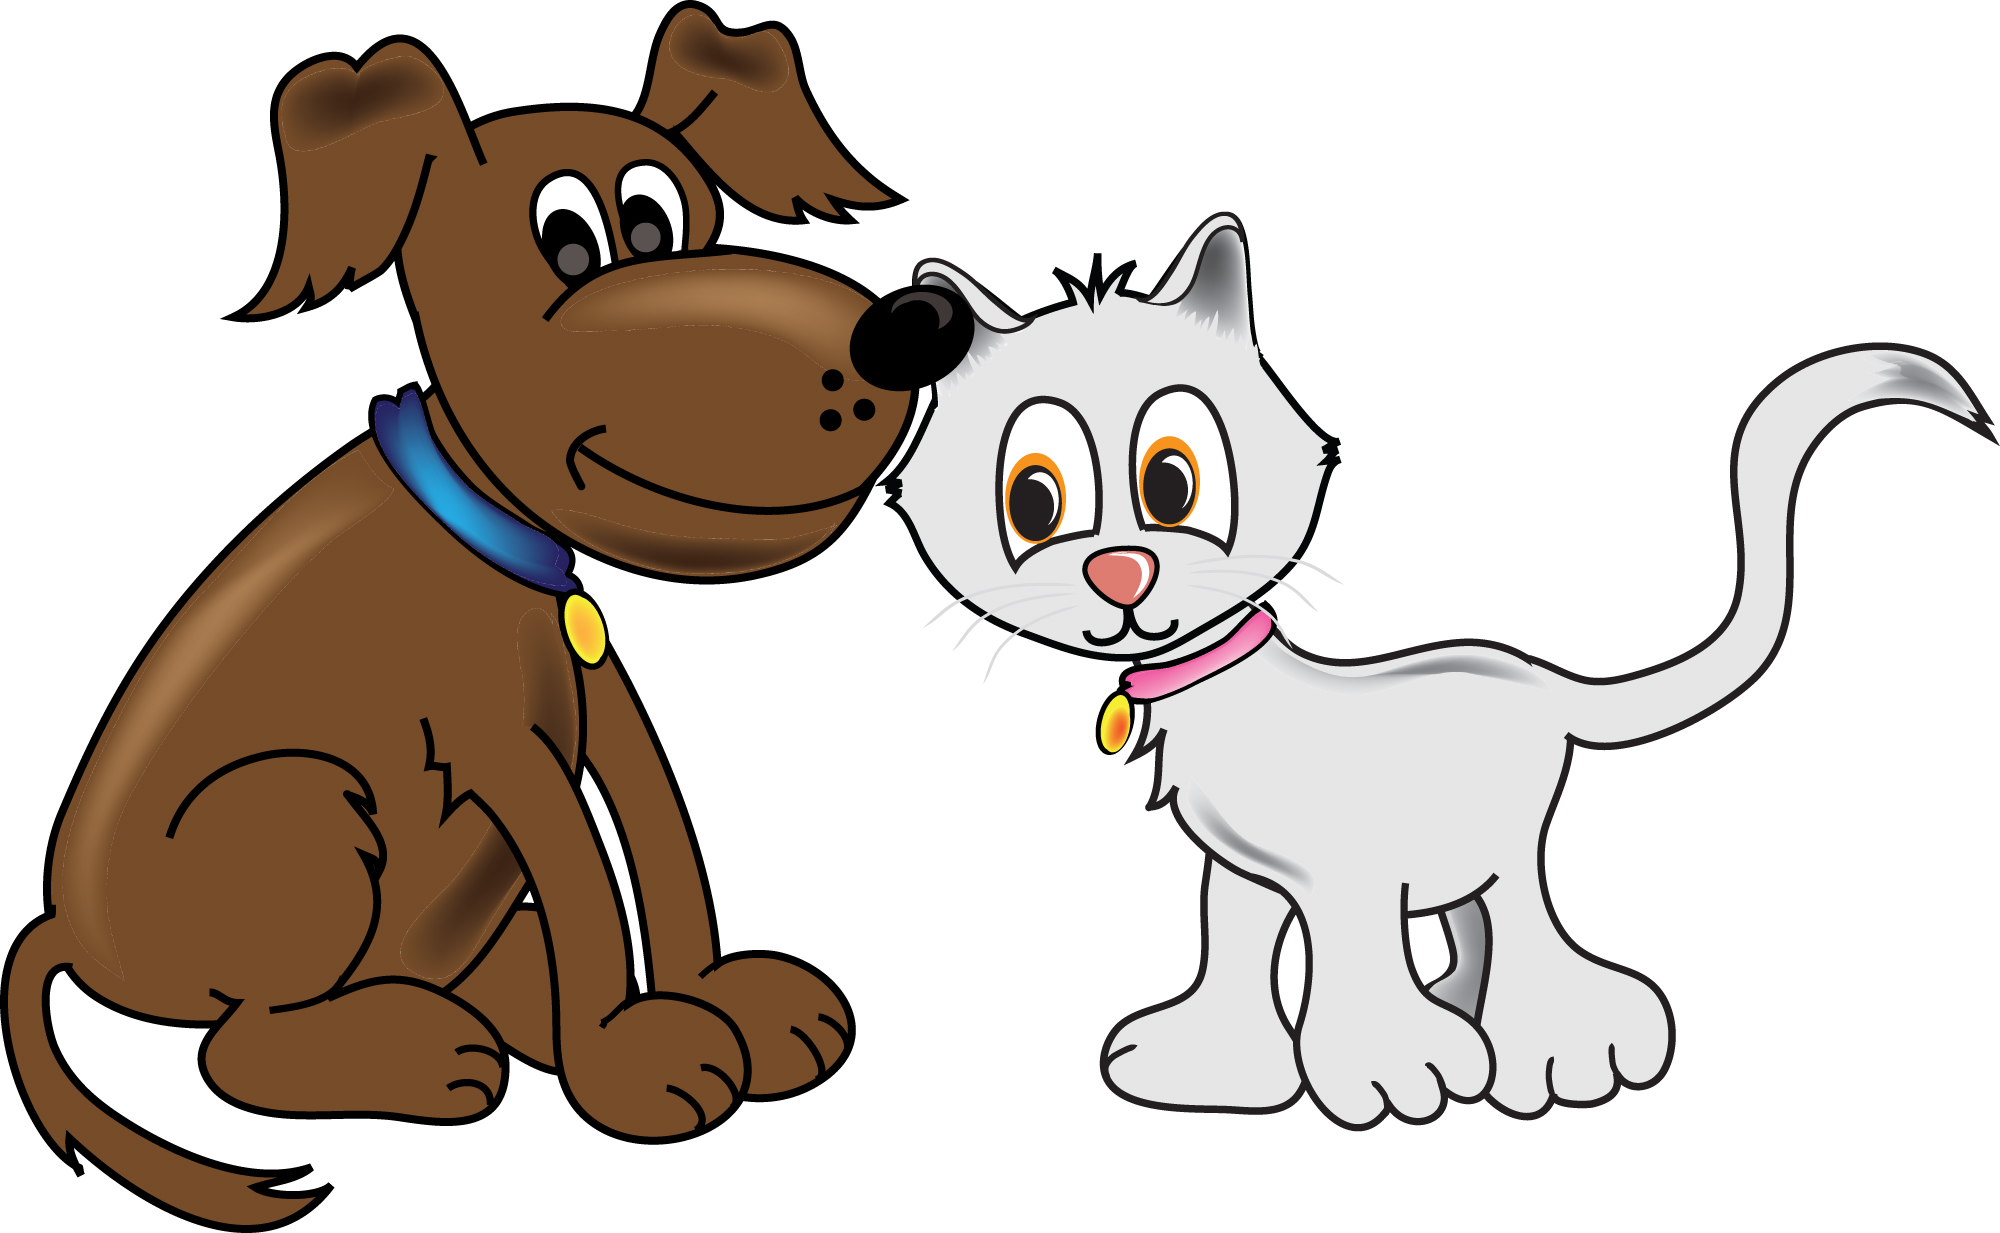 Have You Ever Stopped To Think That Pet -Have You Ever Stopped To Think That Pet Waste Left On The Ground-6